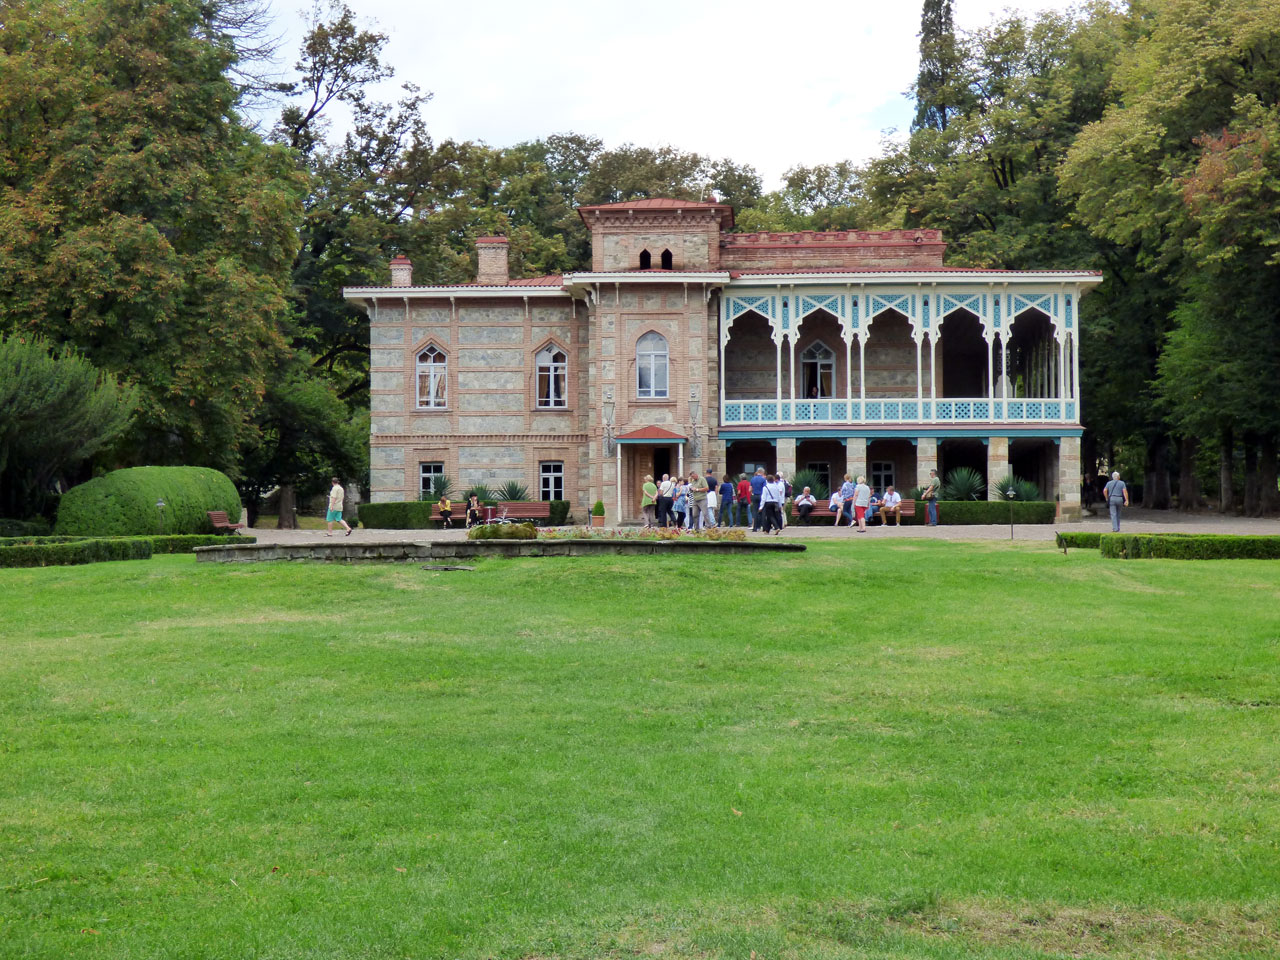 Chavchavadze Estate in Tsinandali, Georgia